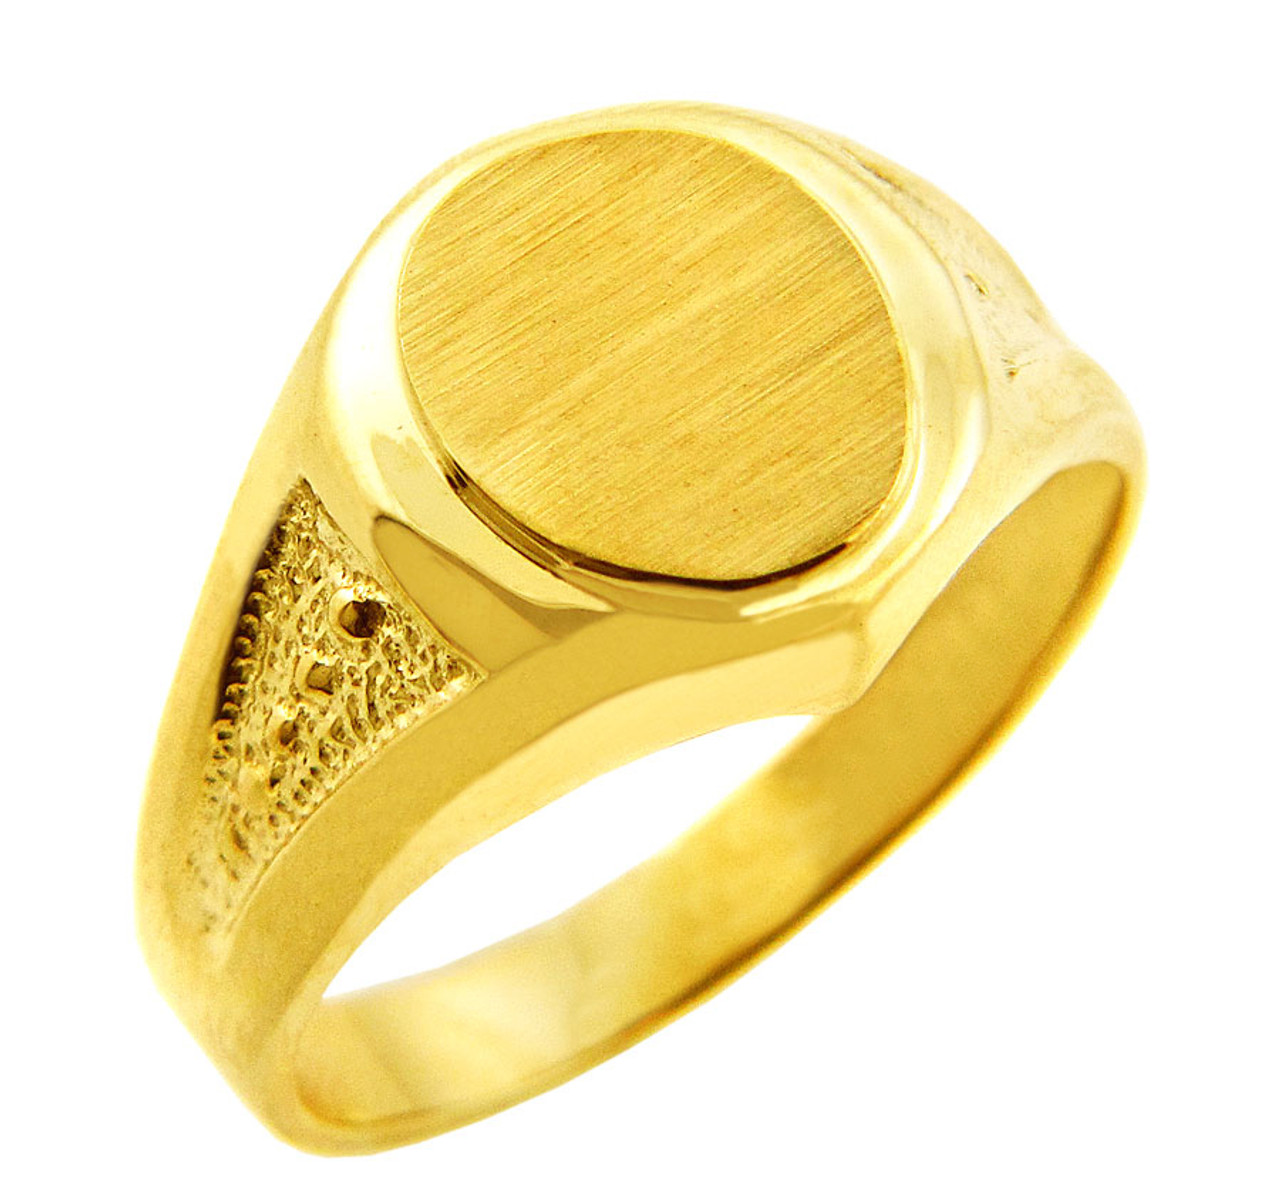 Men S Gold Signet Rings The Apollo Solid Gold Signet Ring